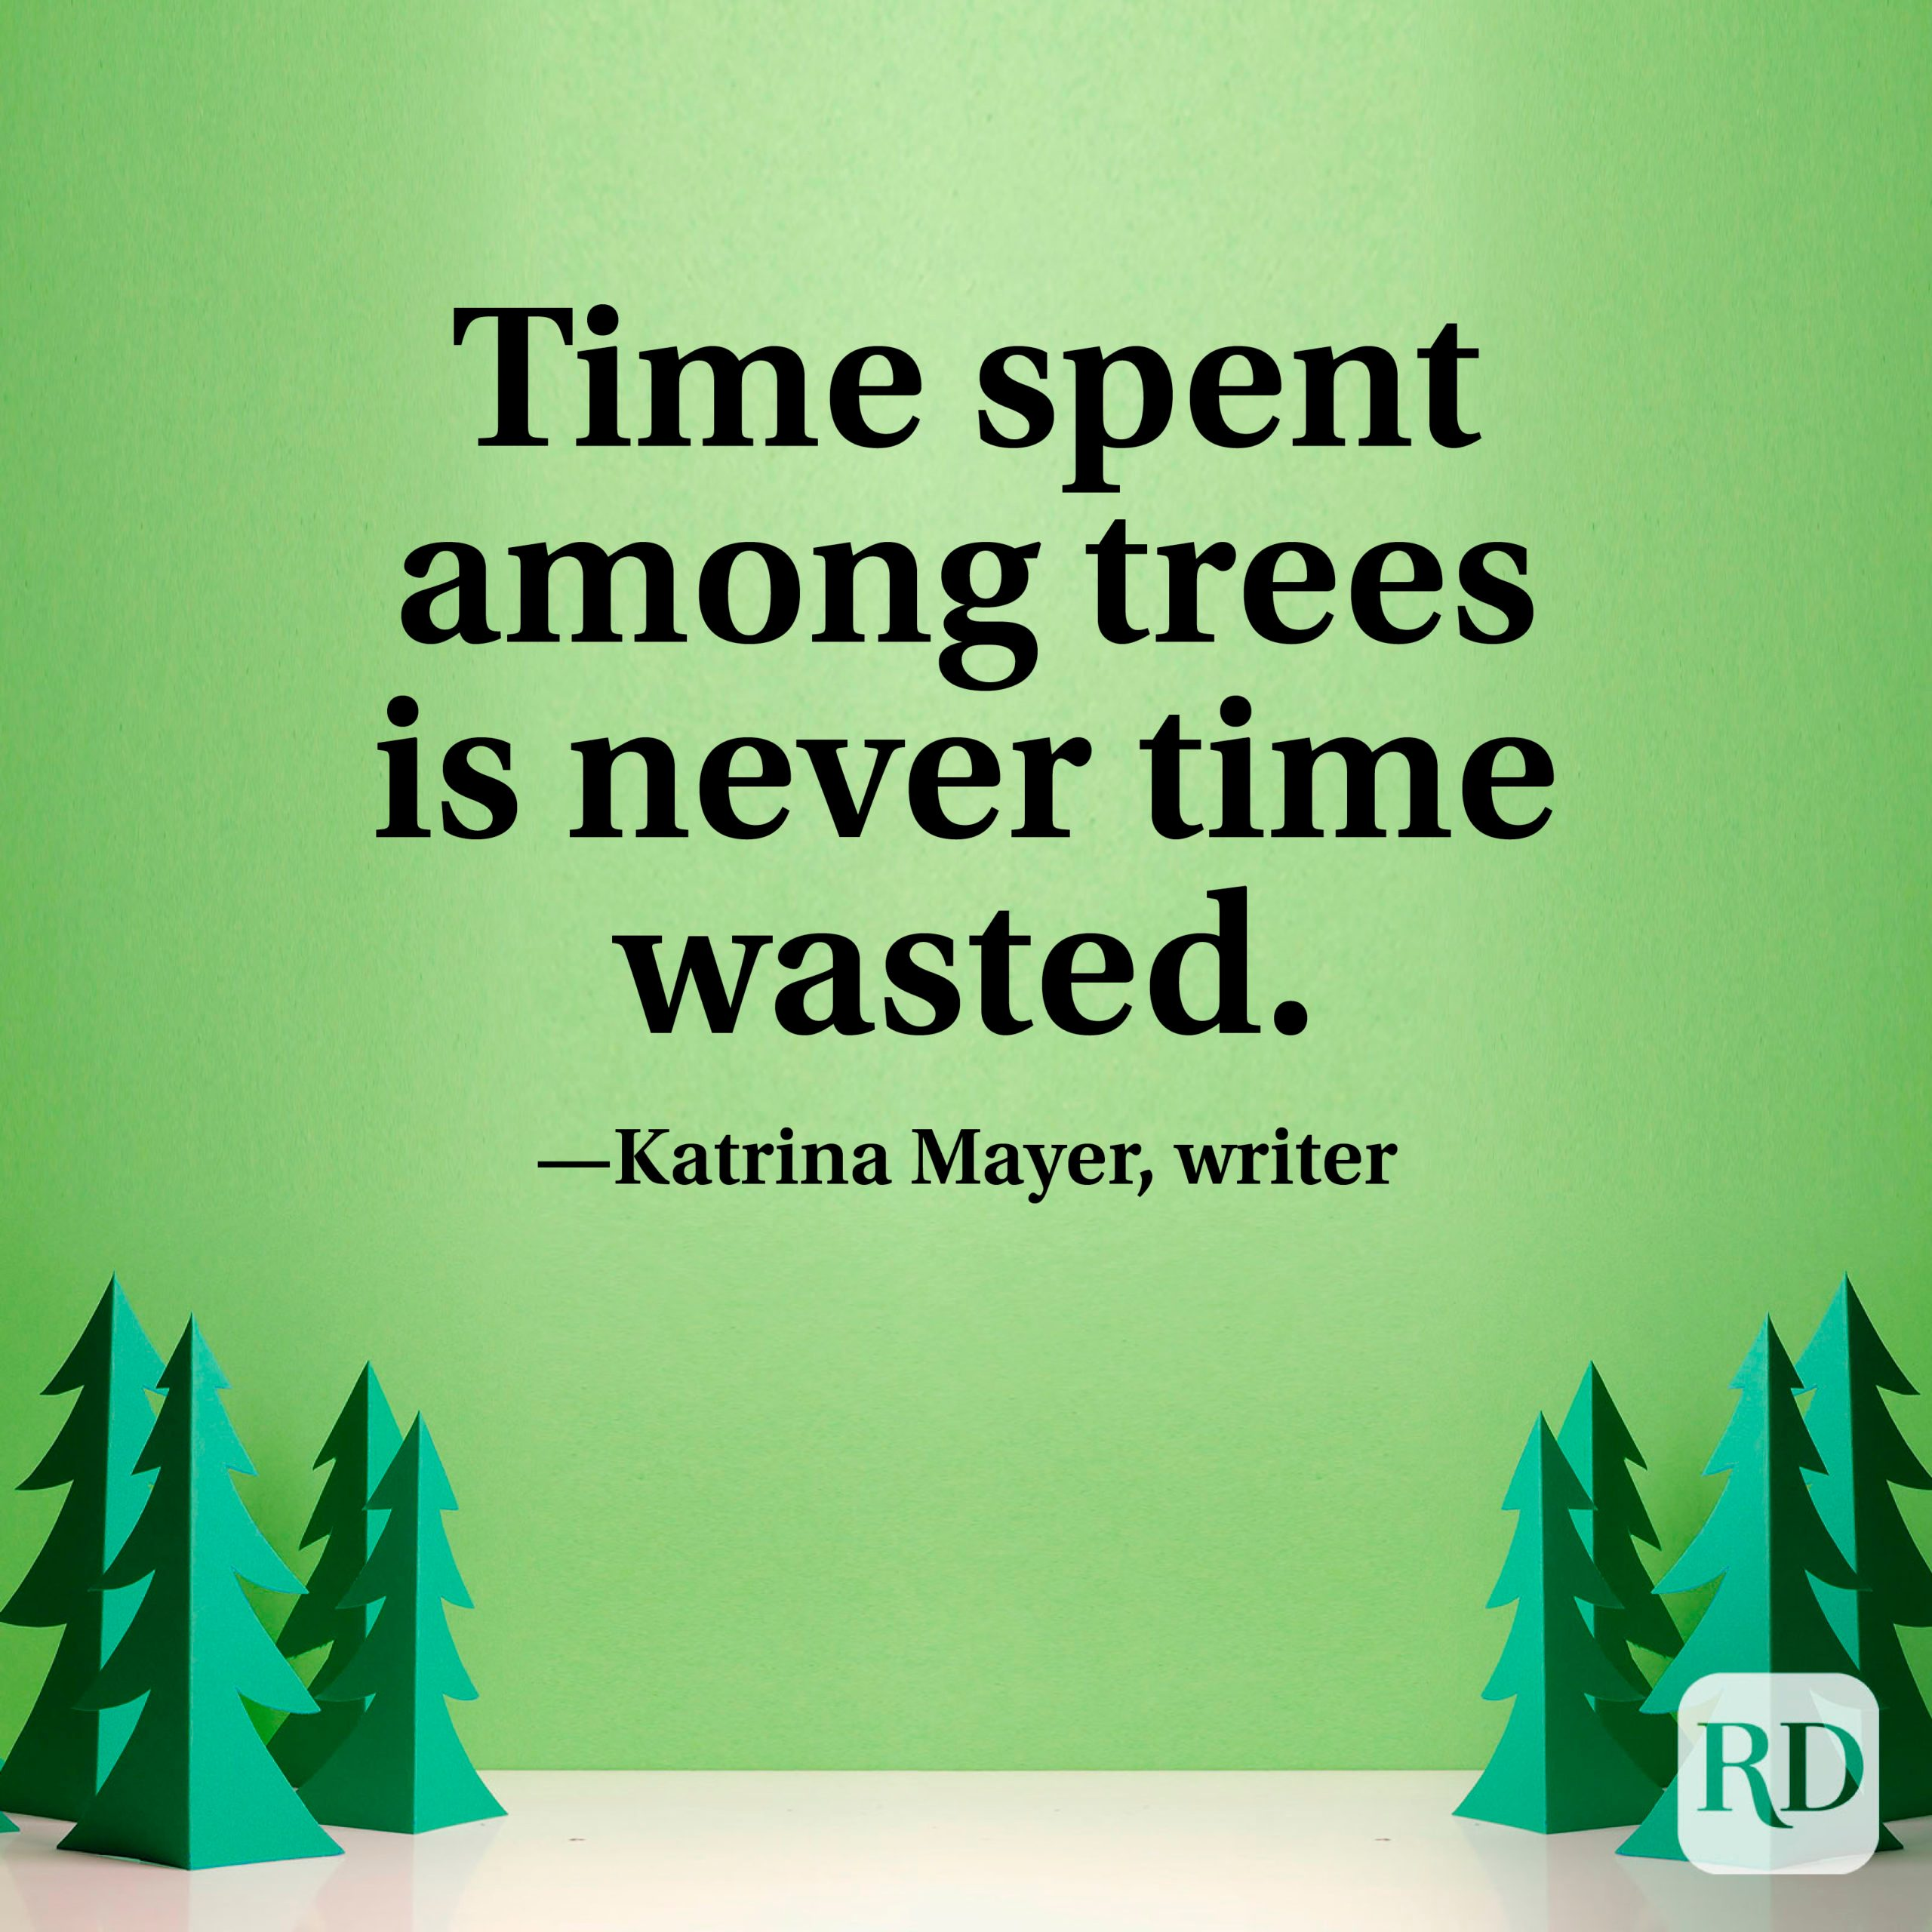 """""""Time spent among trees is never time wasted."""" —Katrina Mayer, writer"""